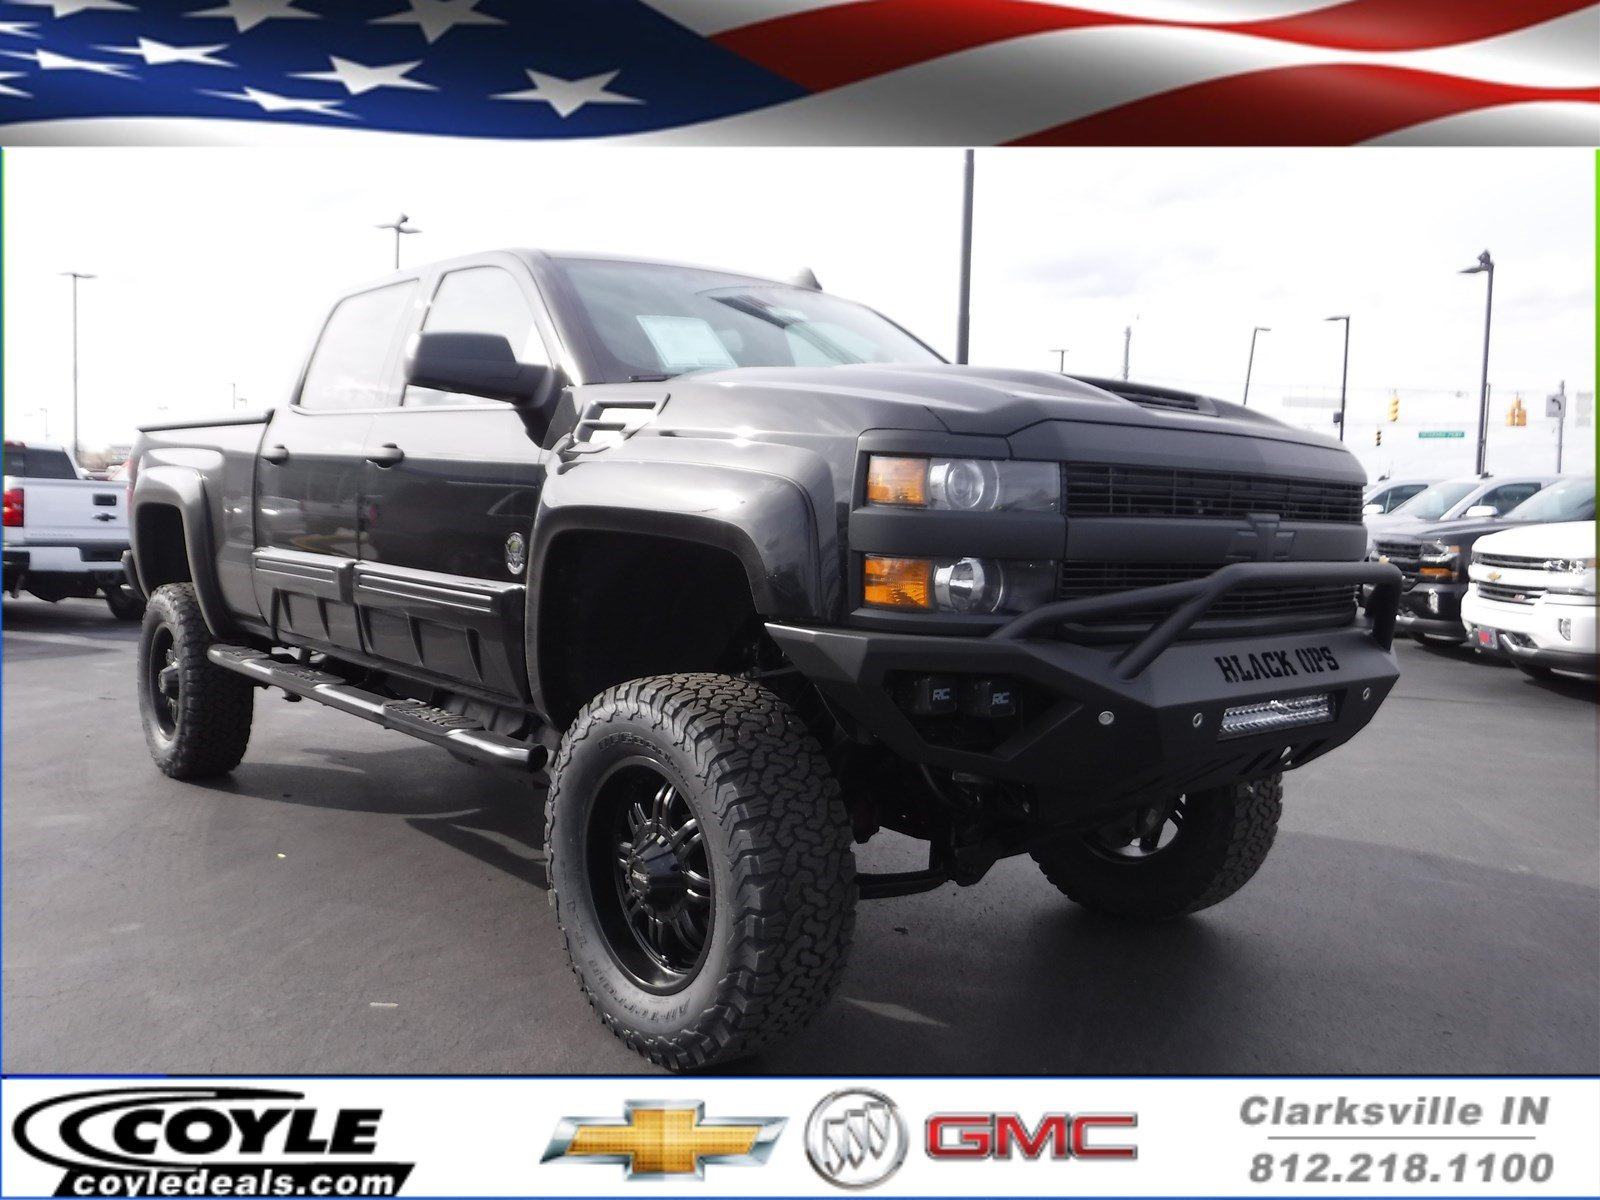 silverado chevrolet double work pickup truck new detail cab